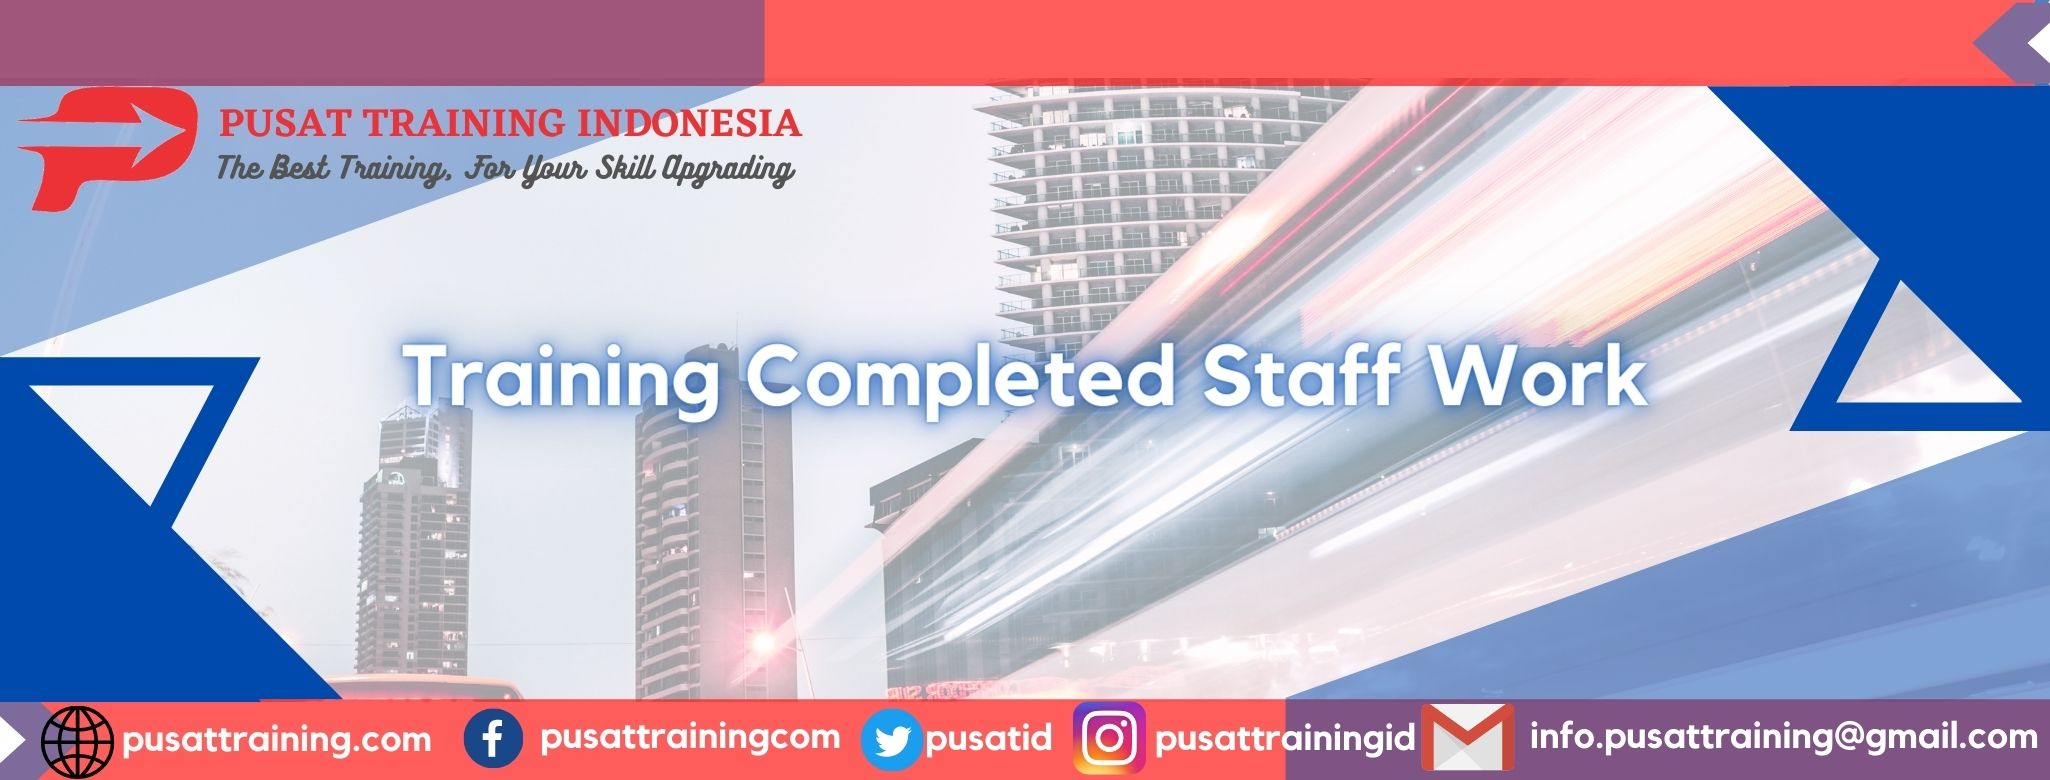 Training-Completed-Staff-Work